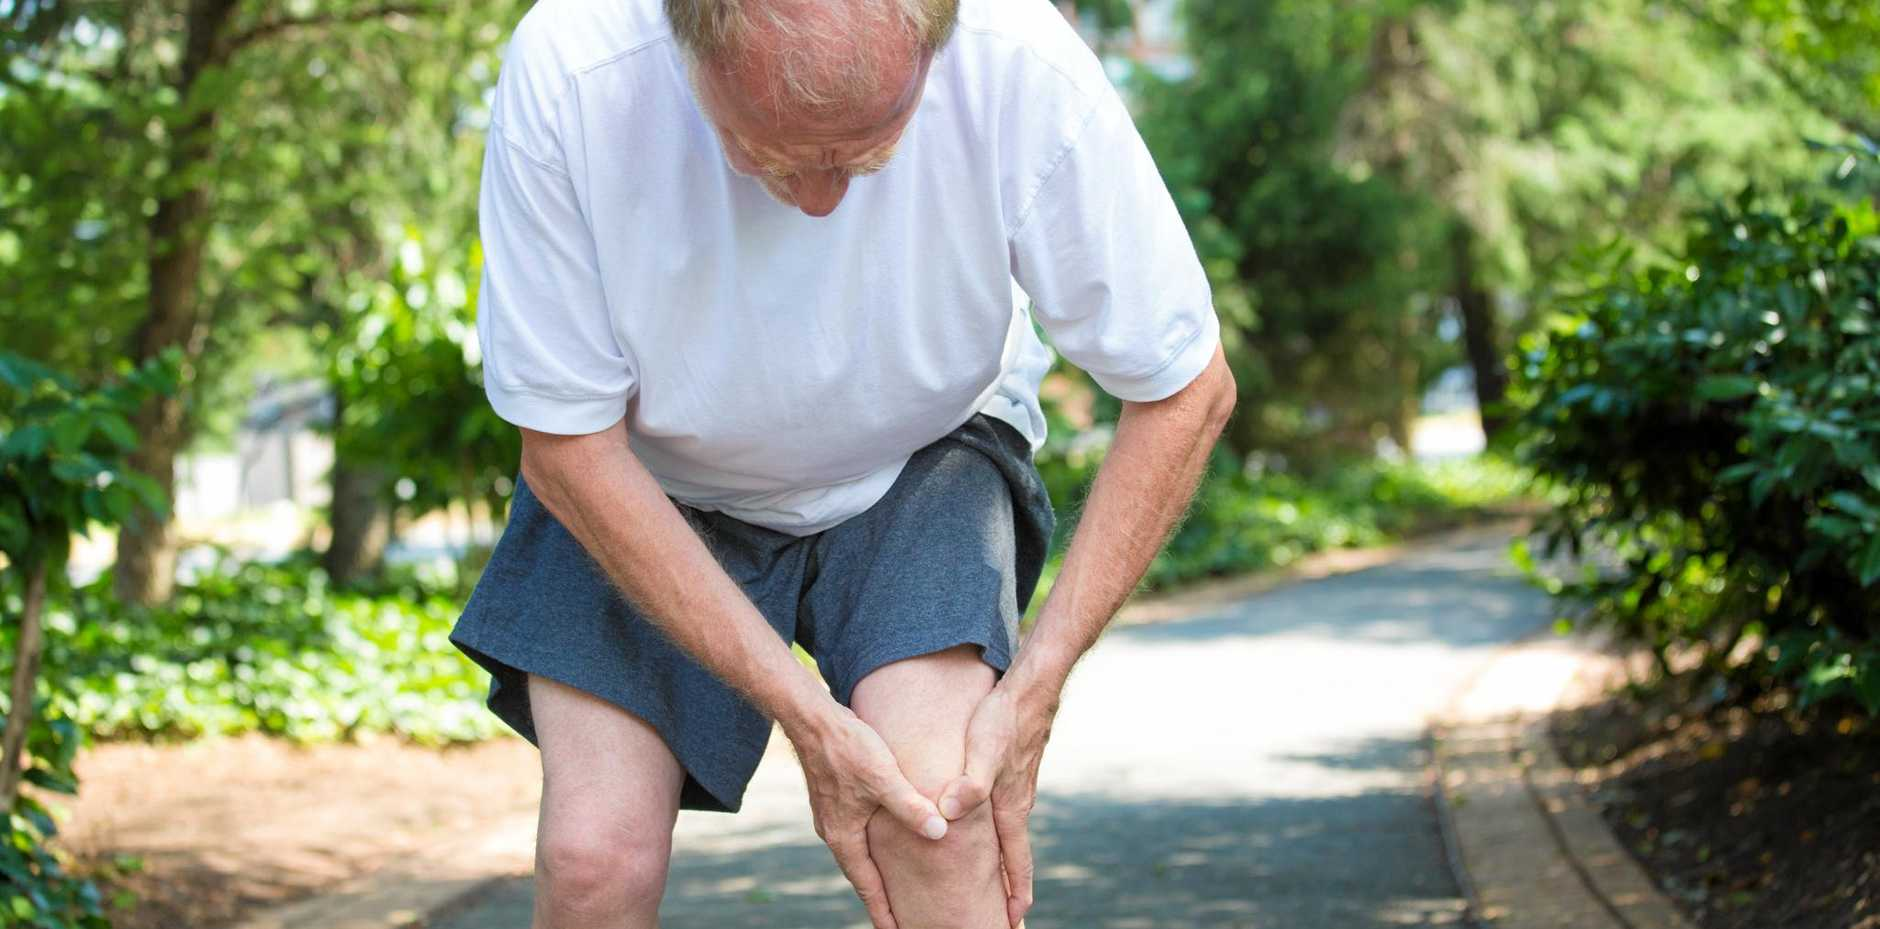 ARTHRITIS: relieve the pain of inflamed joints using some natural treatments.